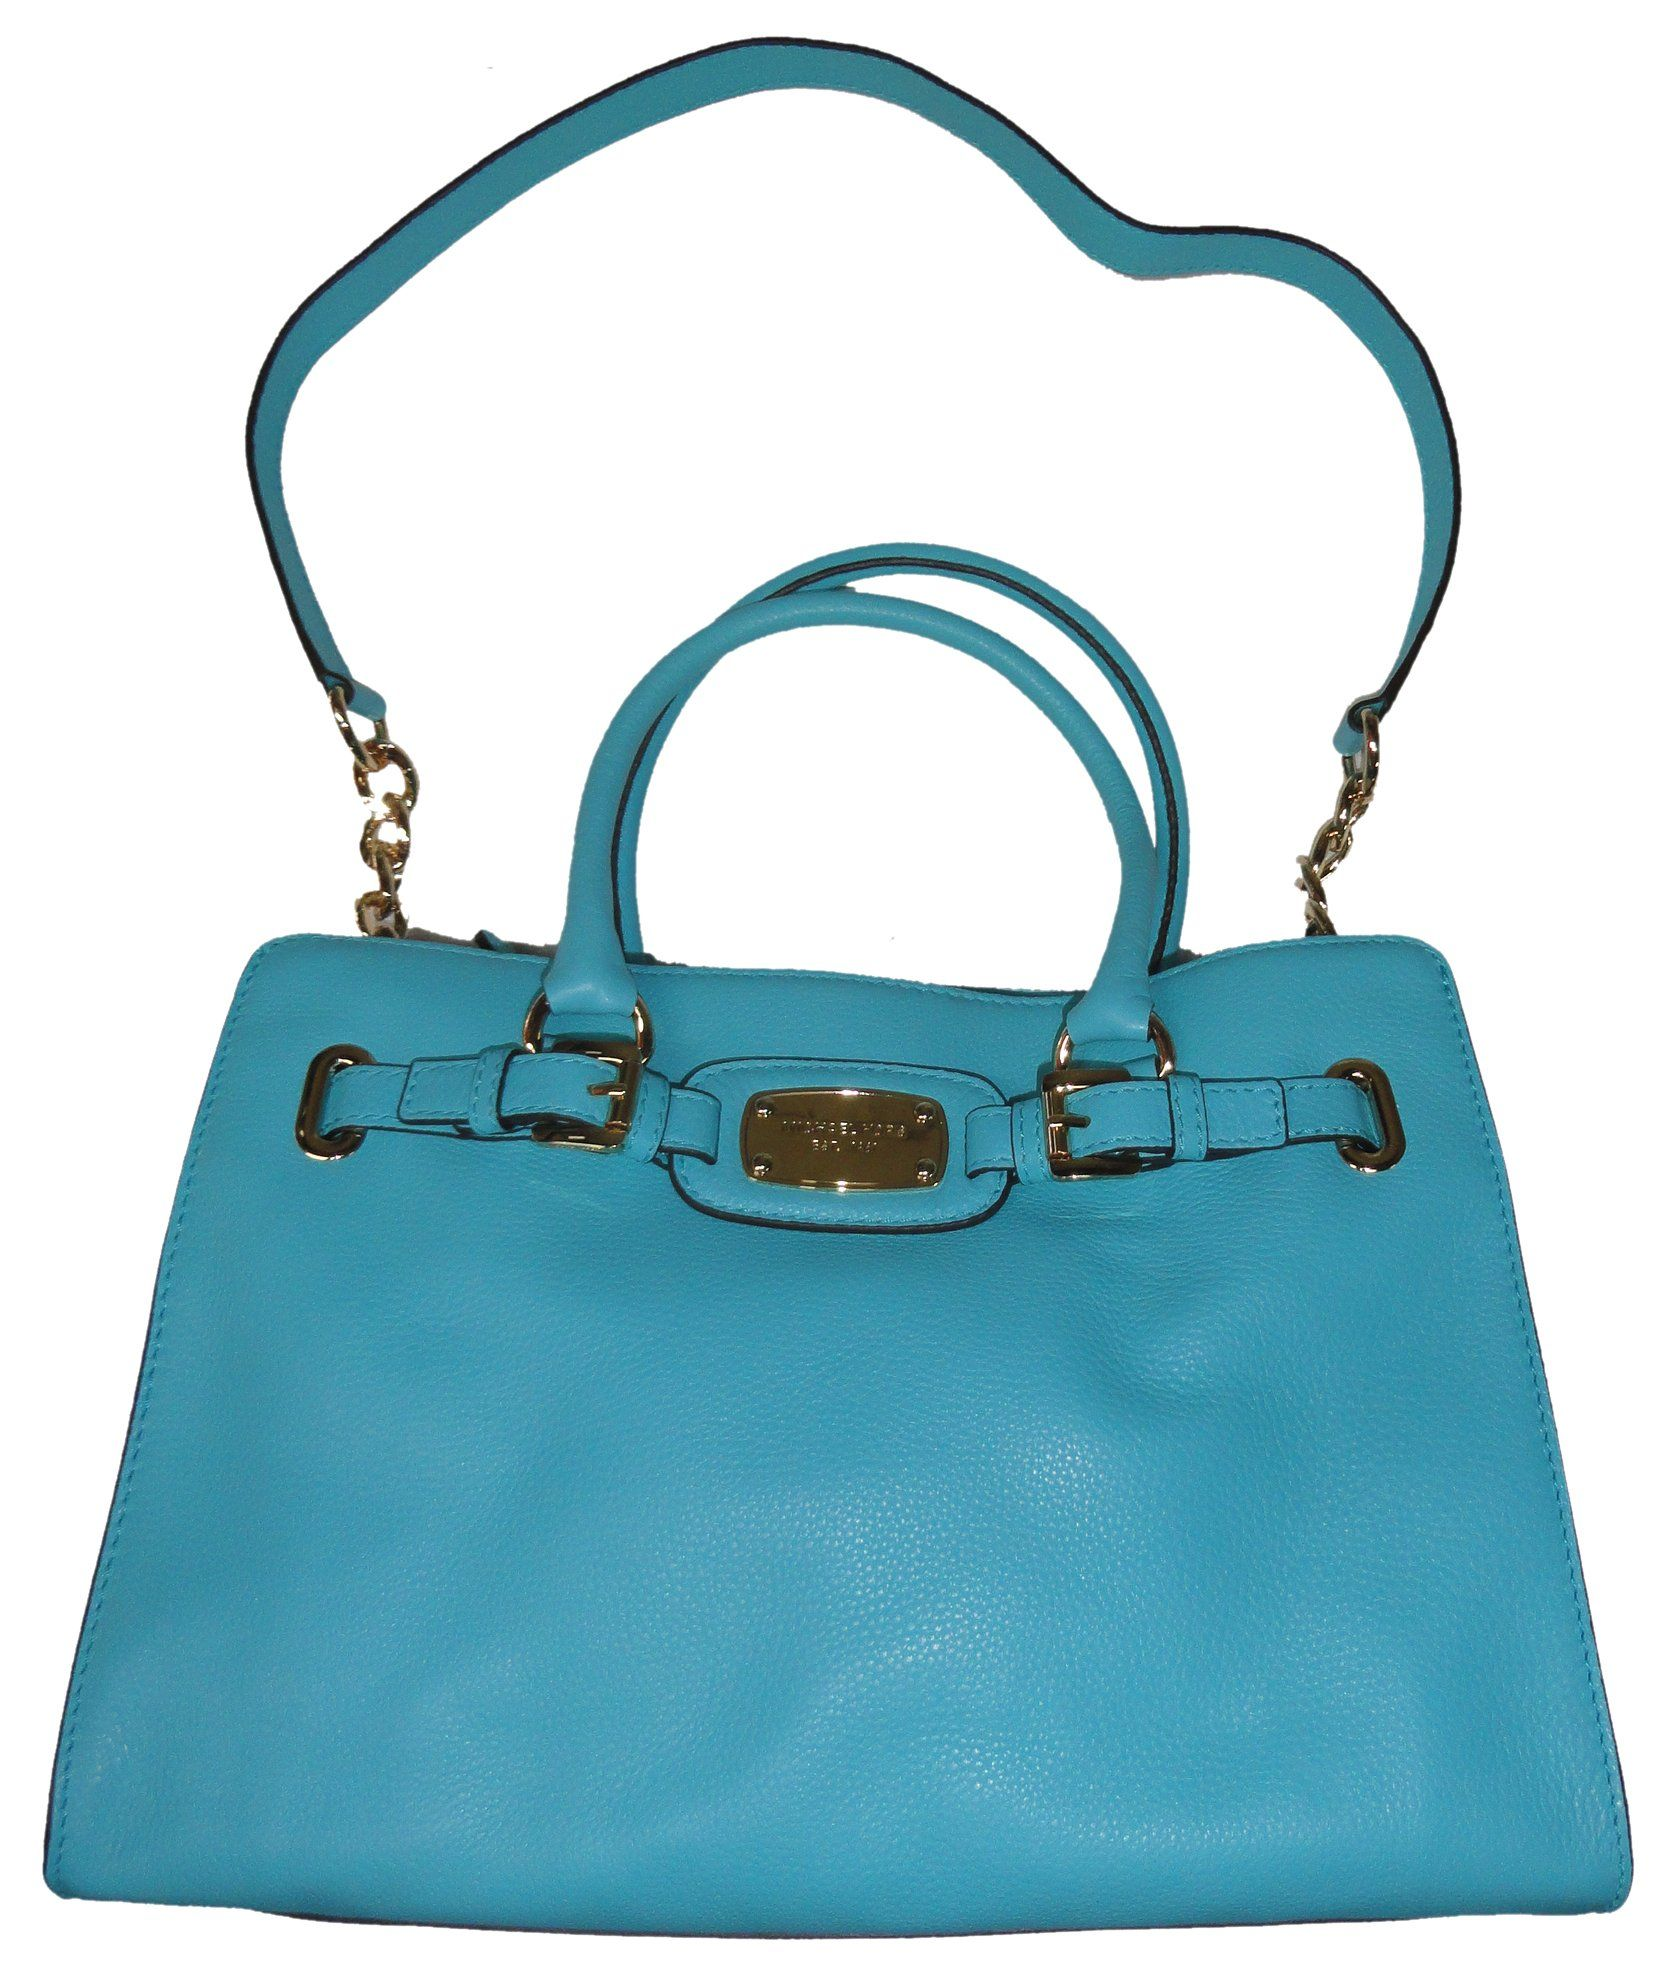 3303b808fceb MICHAEL MICHAEL KORS HAMILTON AQUAMARINE SAFFIANO LEATHER EAST WEST SATCHEL  BAG >>> Details can be found by clicking on the image.